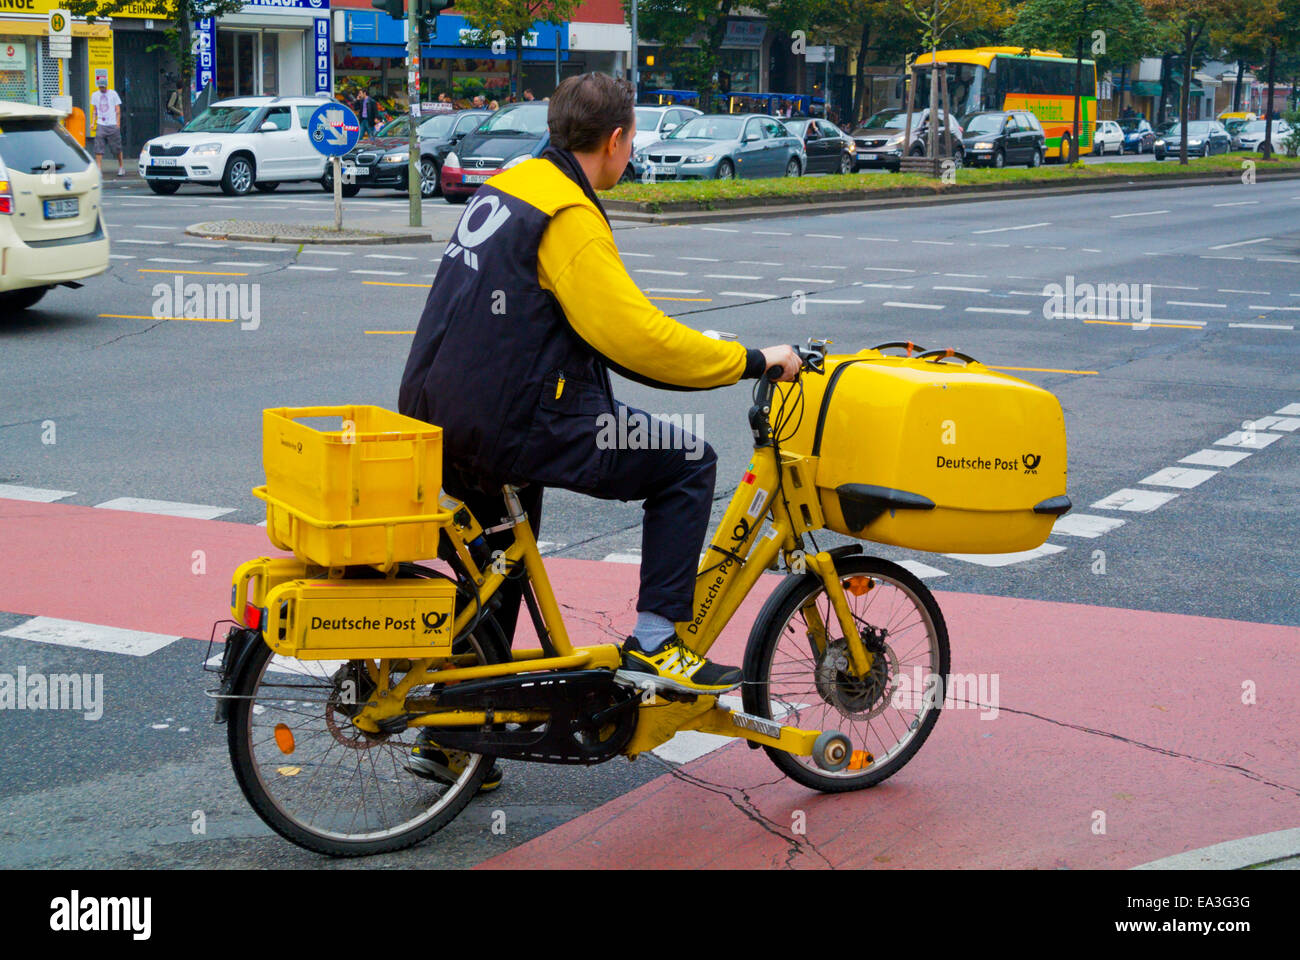 Deutsche Post, German postal company, postman on bike, Kreuzberg, west Berlin, Germany - Stock Image